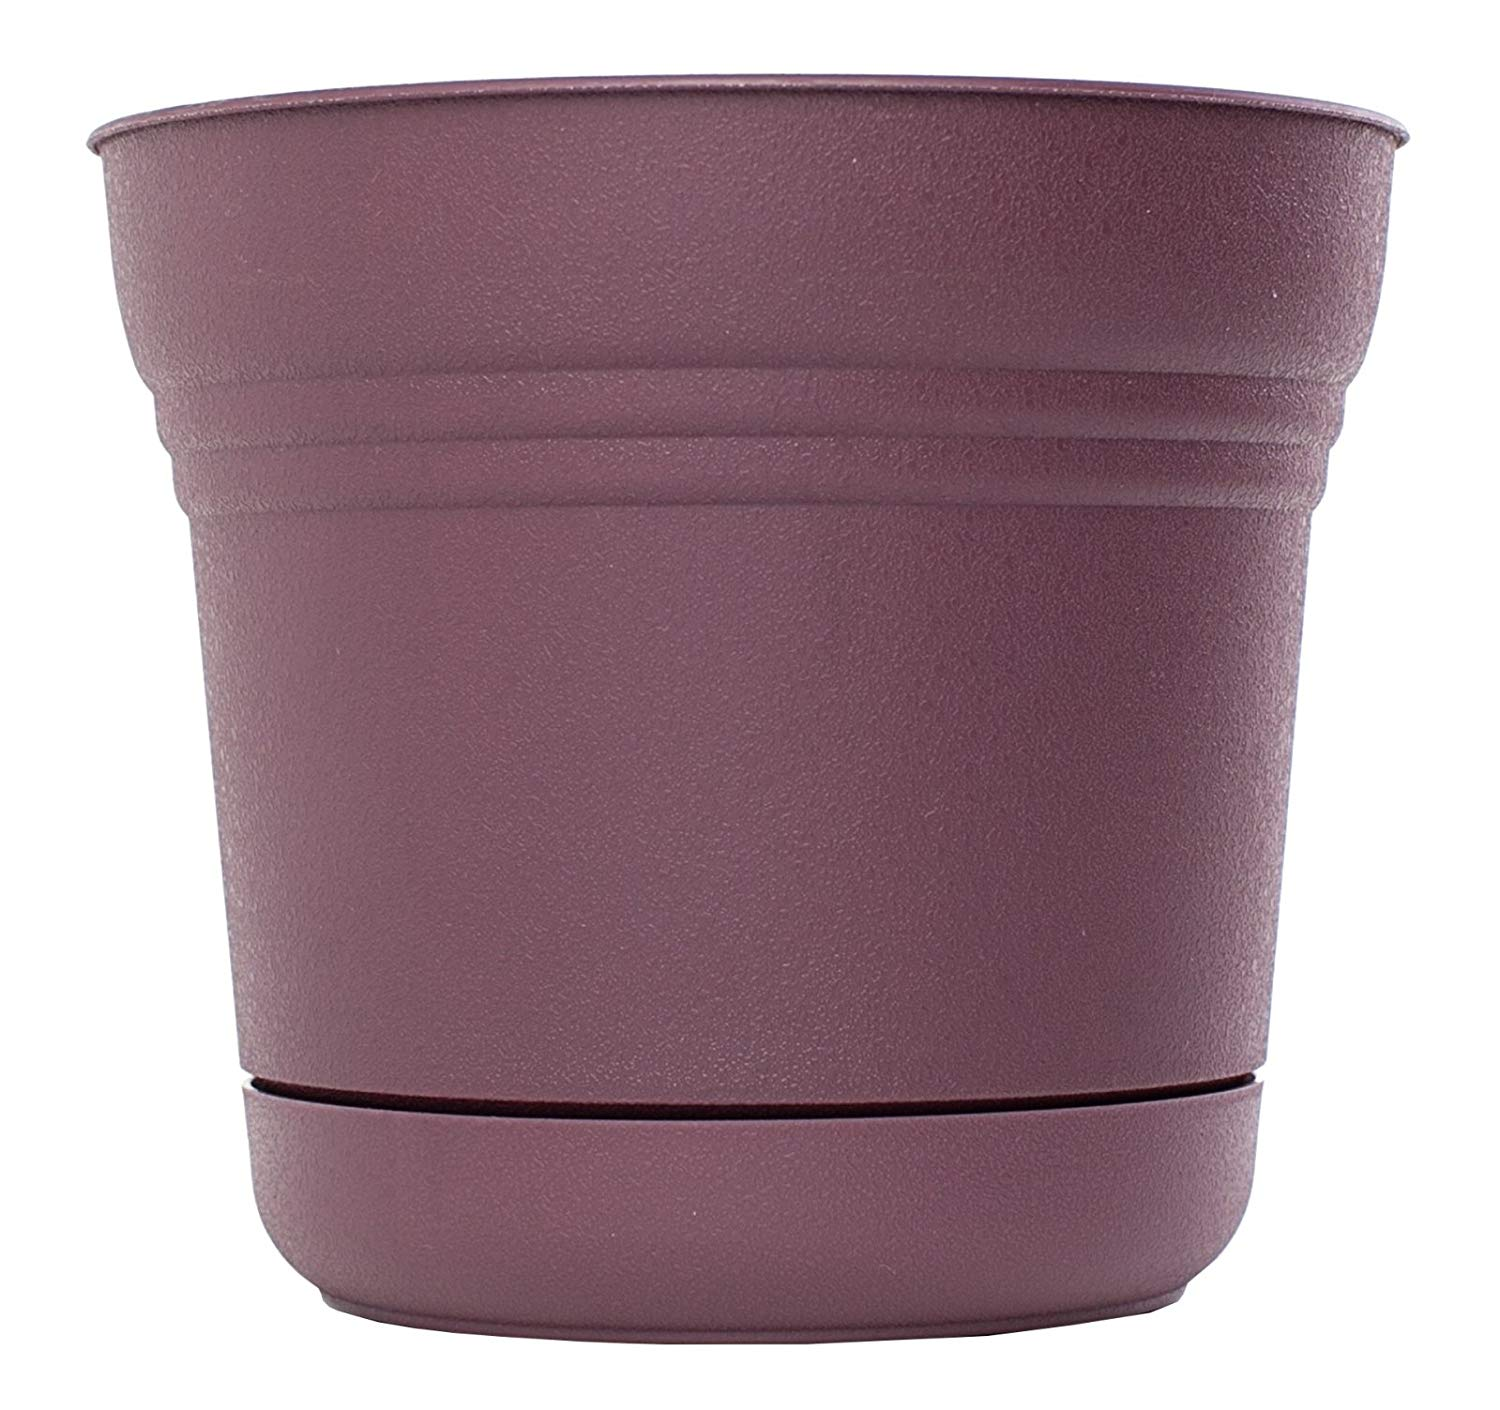 "Saturn Round Pot Planter Color: Exotica, Size: 6.5"" H x 7.4"" W x 7.4"" D"